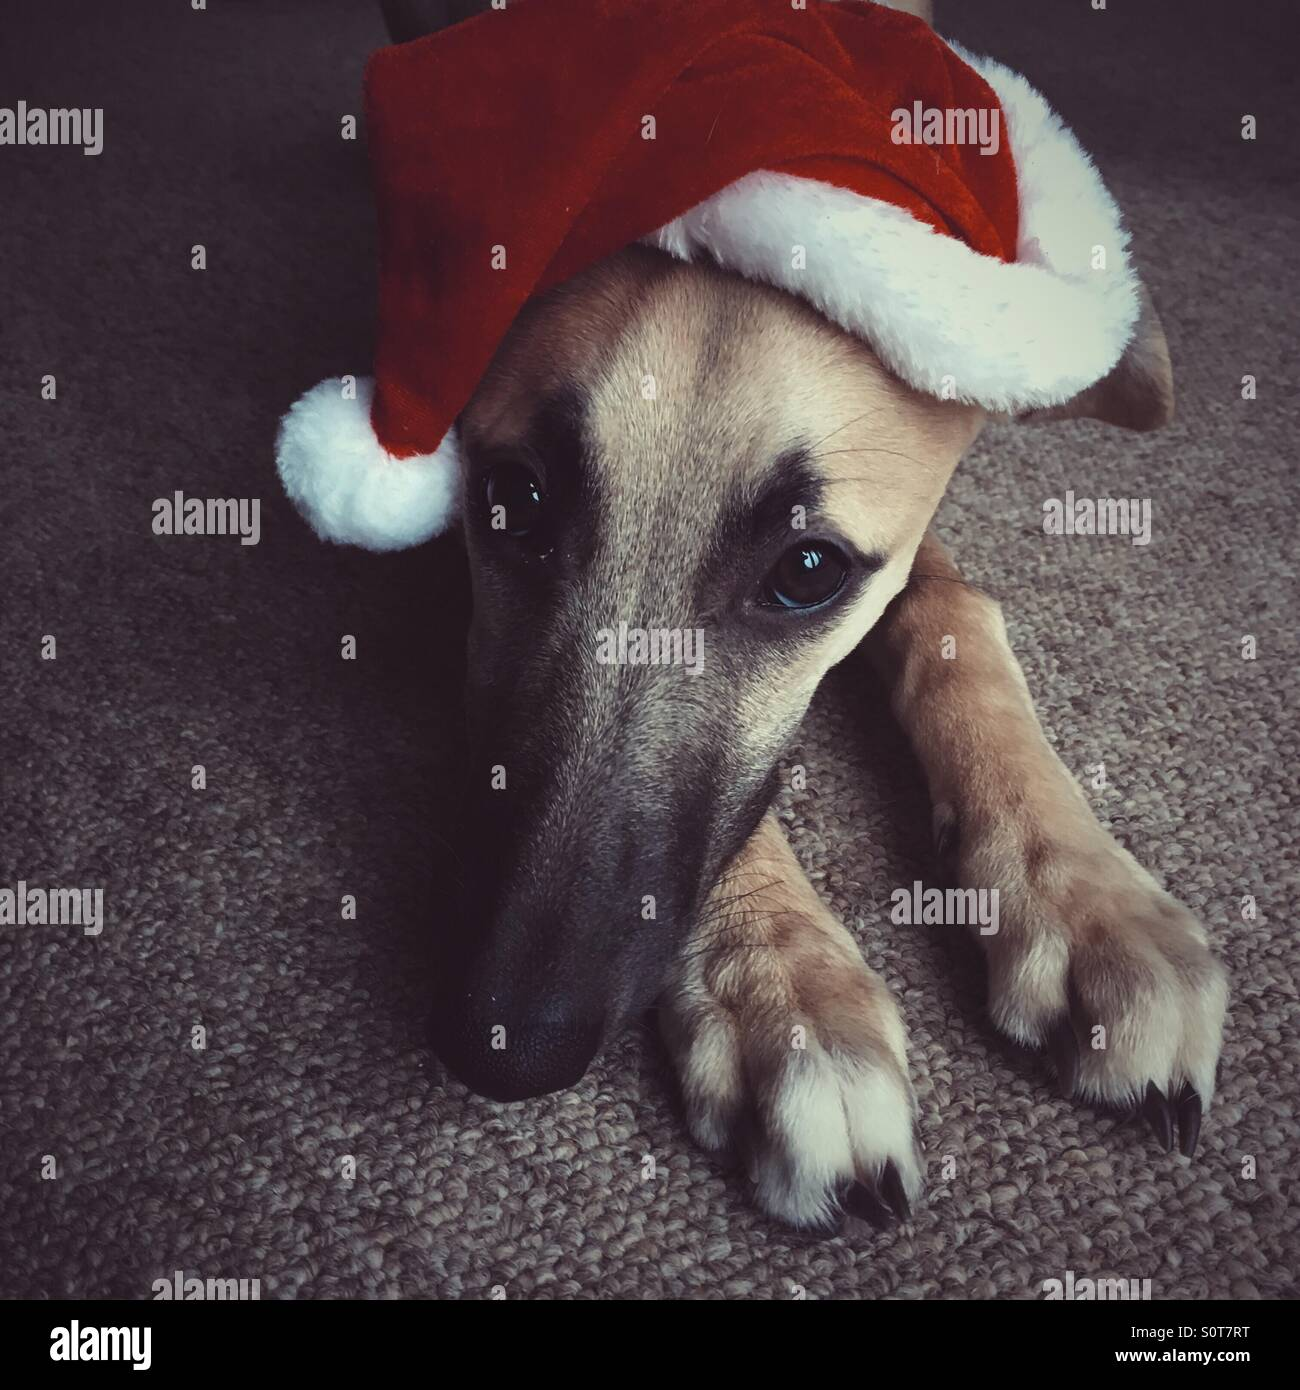 457b7010050d5 Portrait of a whippet dog in a Santa hat resting his her head on their paws